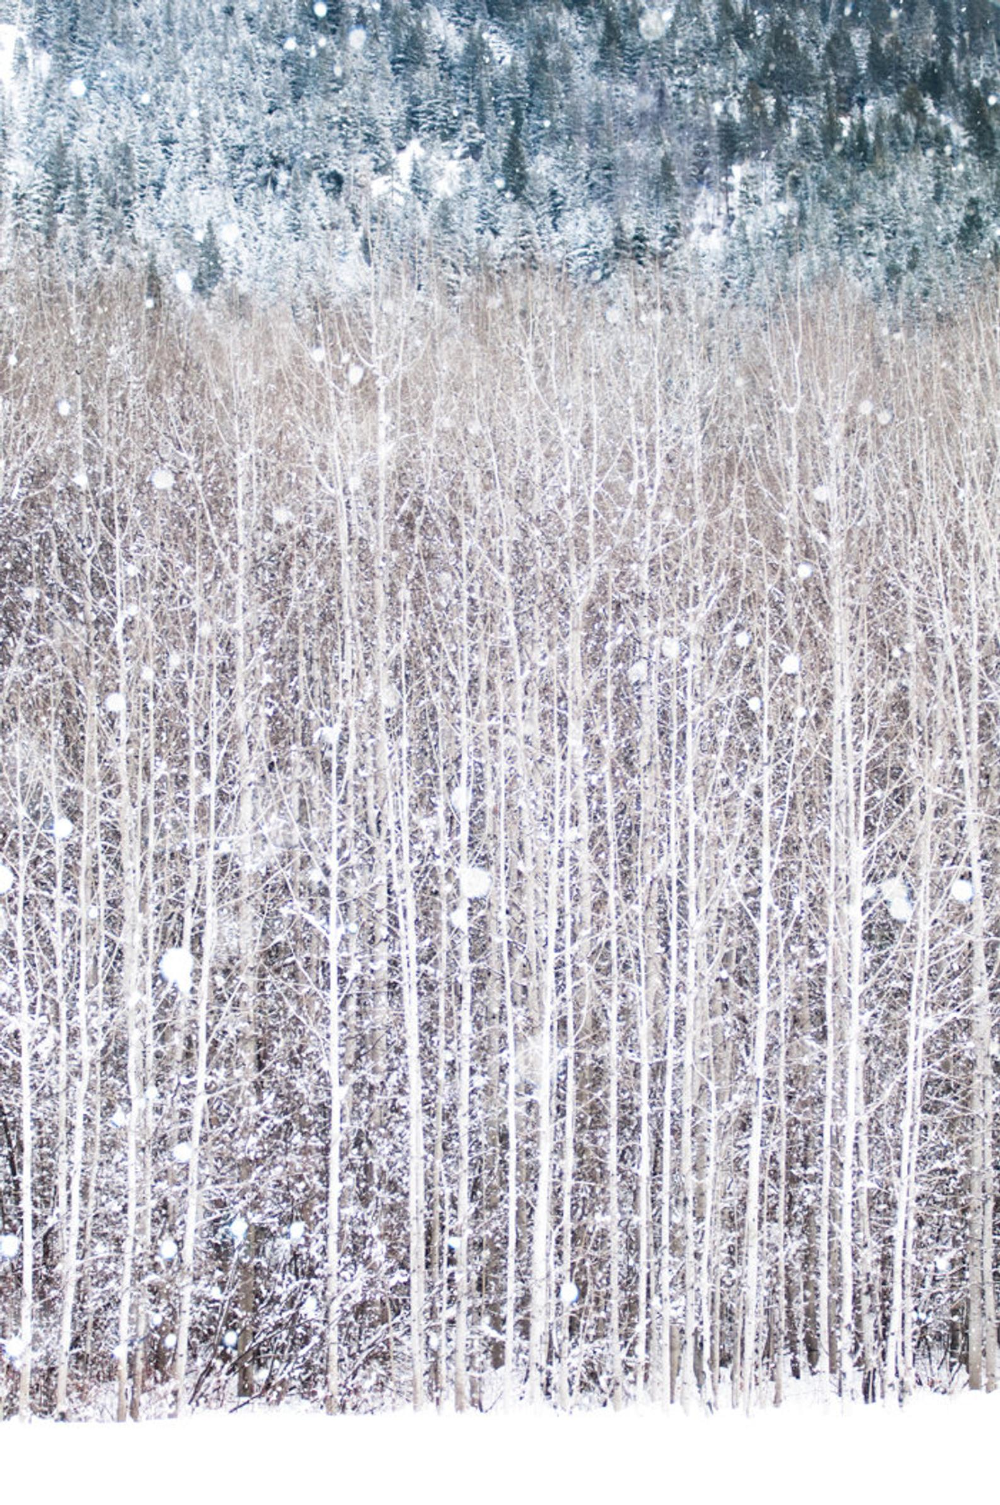 Winter Photography Birch Trees In Snow Nature Photography Woodland Wall Decor Large Wall Art Winter Photography Woodland Wall Decor Snow